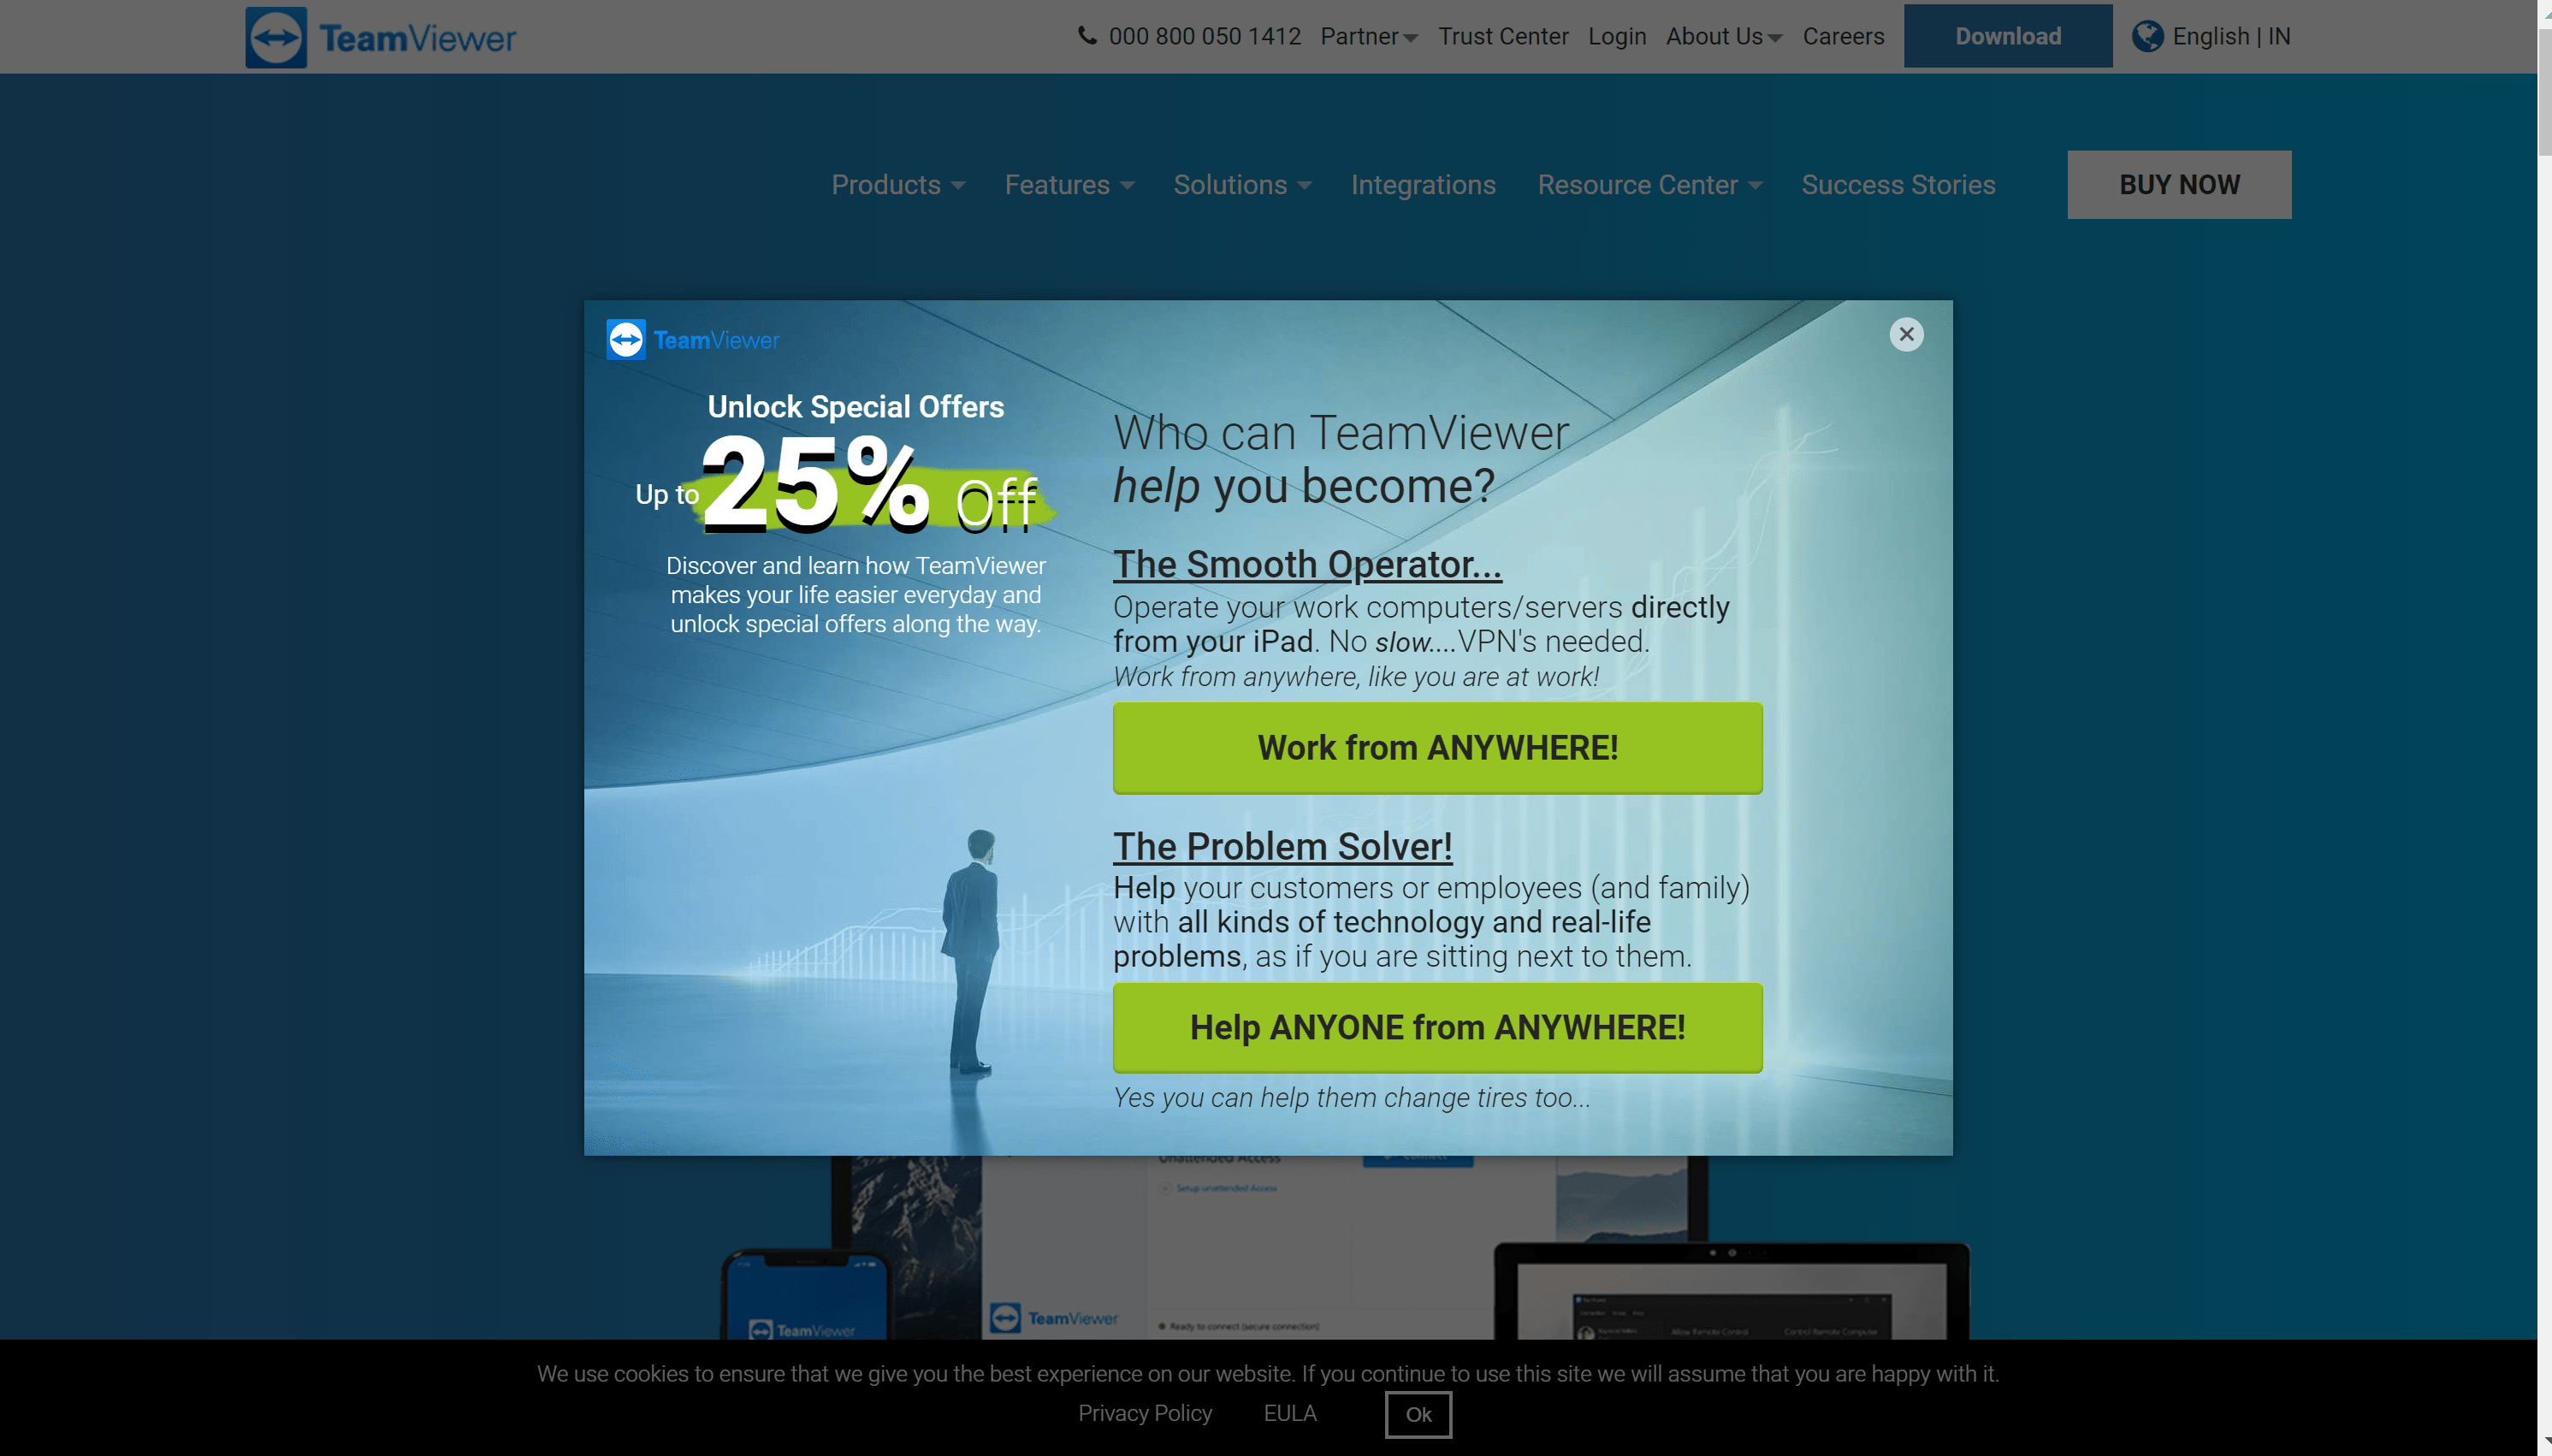 TeamViewer Coupon Codes September 2019: Get 50% Off! {Verified}